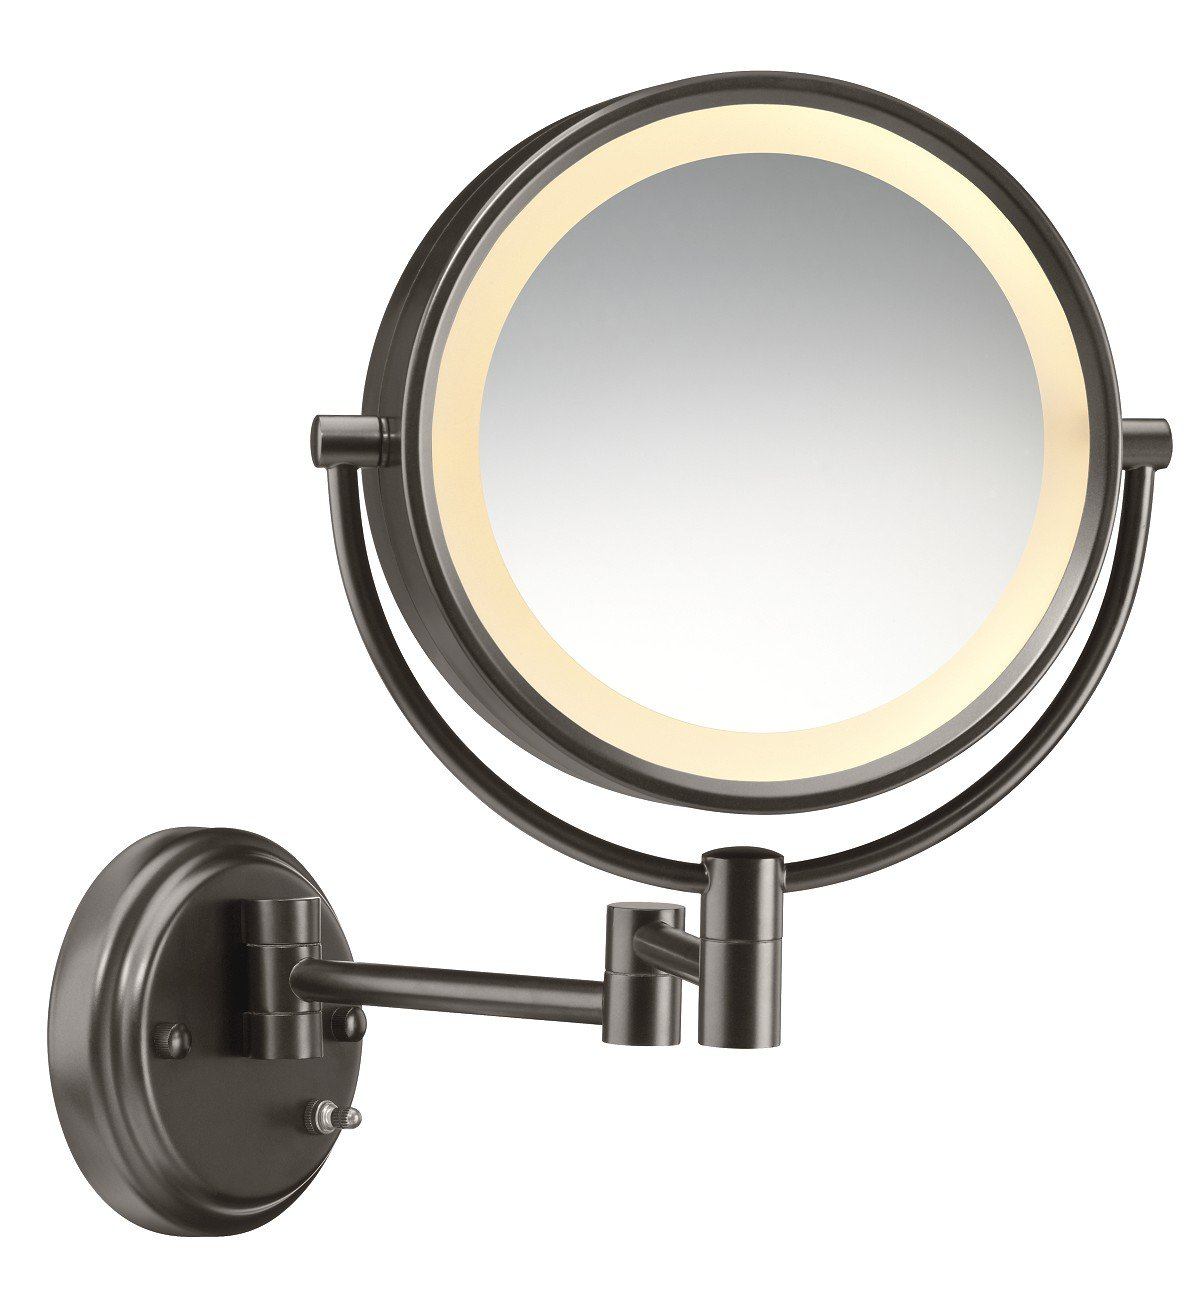 Lighted Mirror.Victoria Led Lighted Mirror. Led Lighted